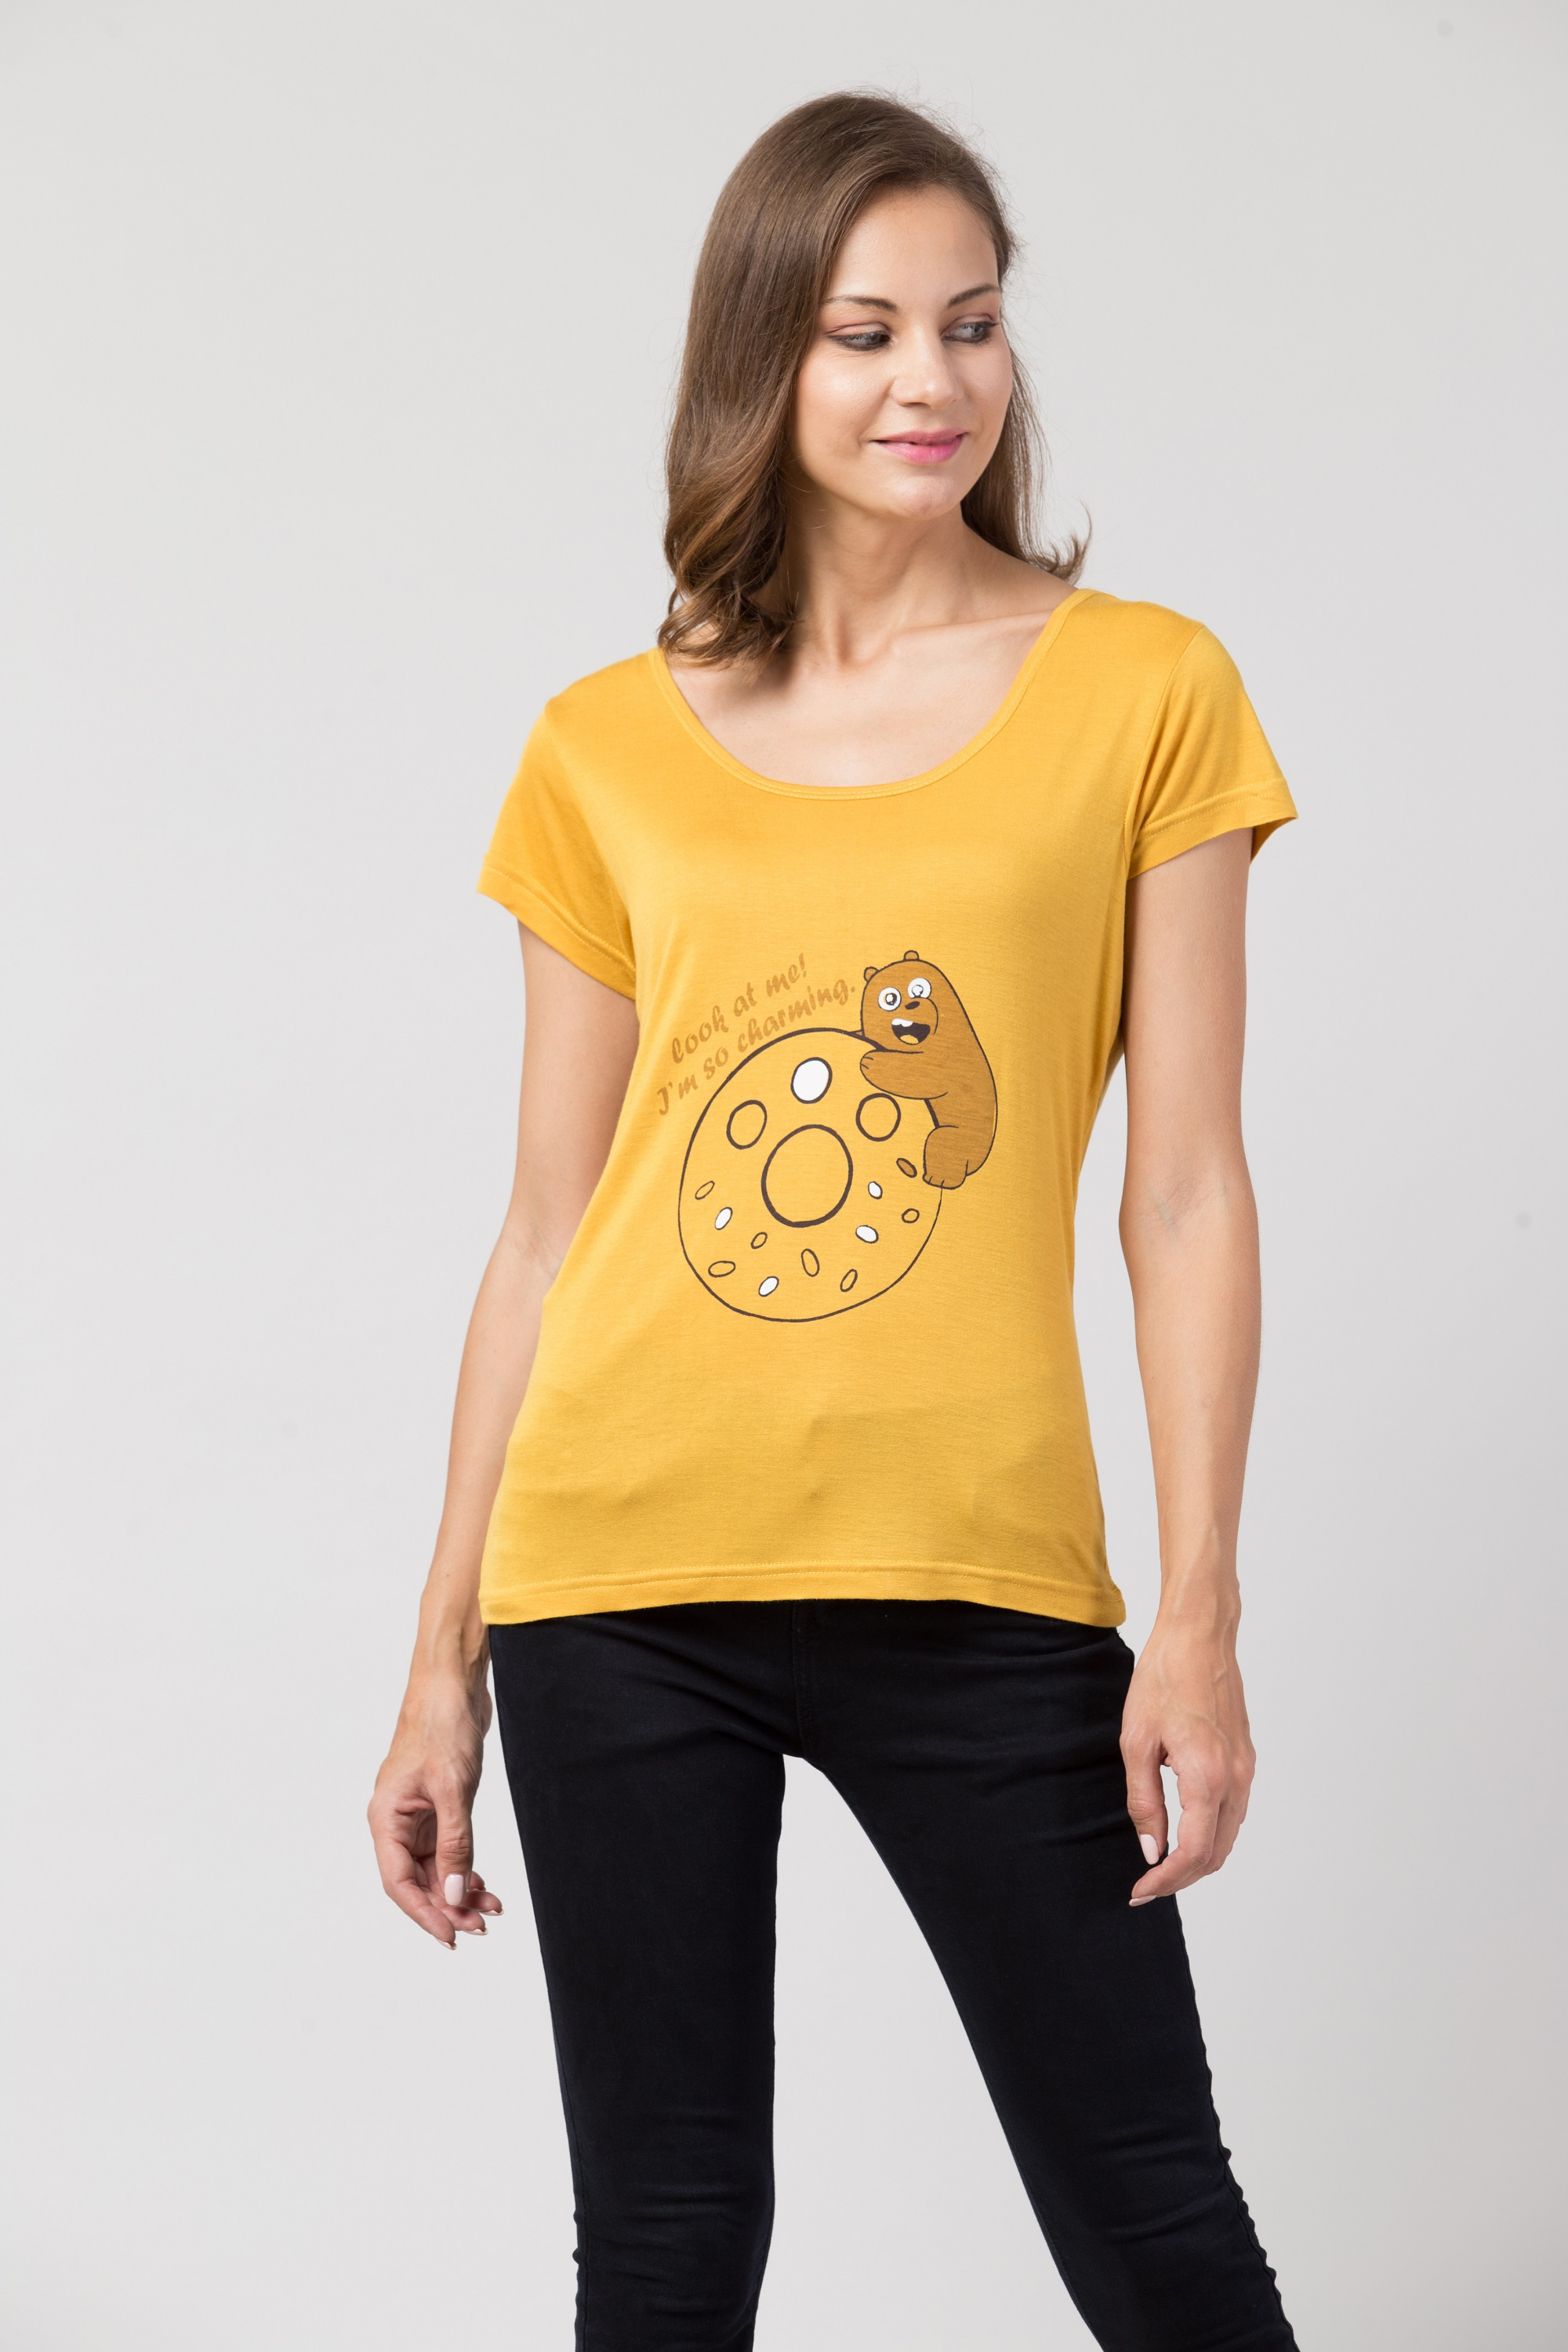 Follle Yellow Tshirt With Panda And Donut